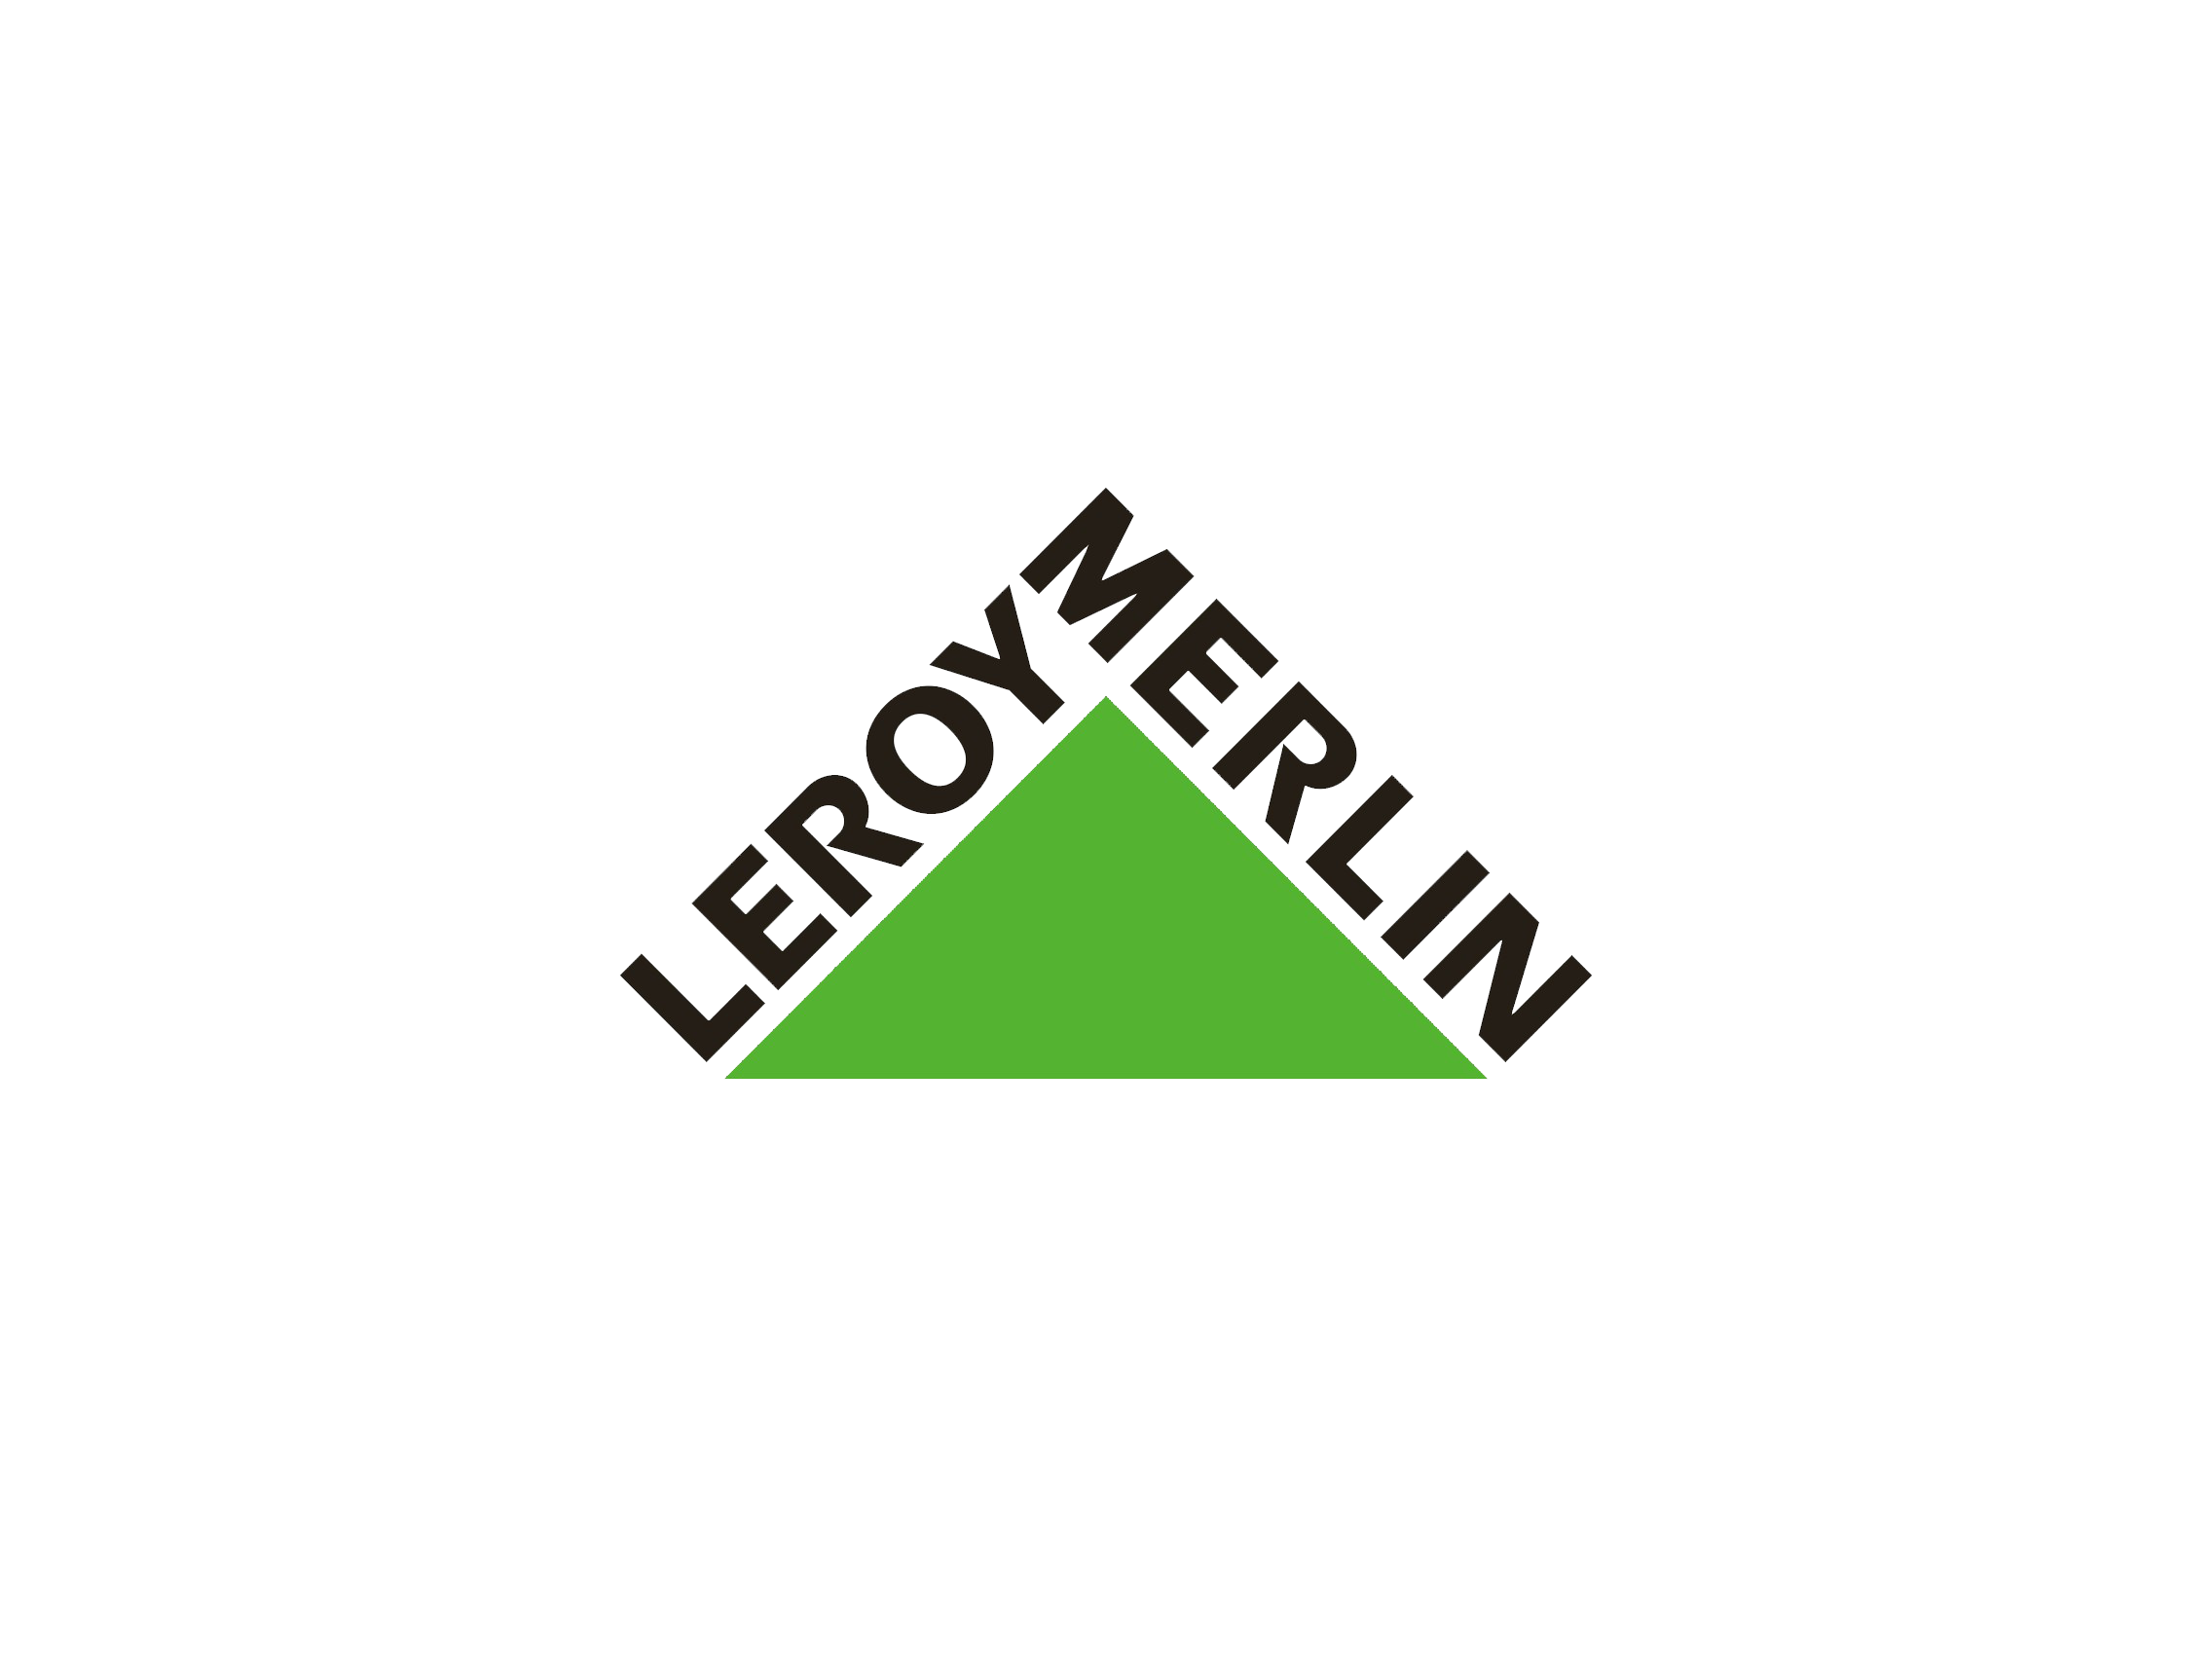 Leroy merlin logo logok for Leroy merlin merlin